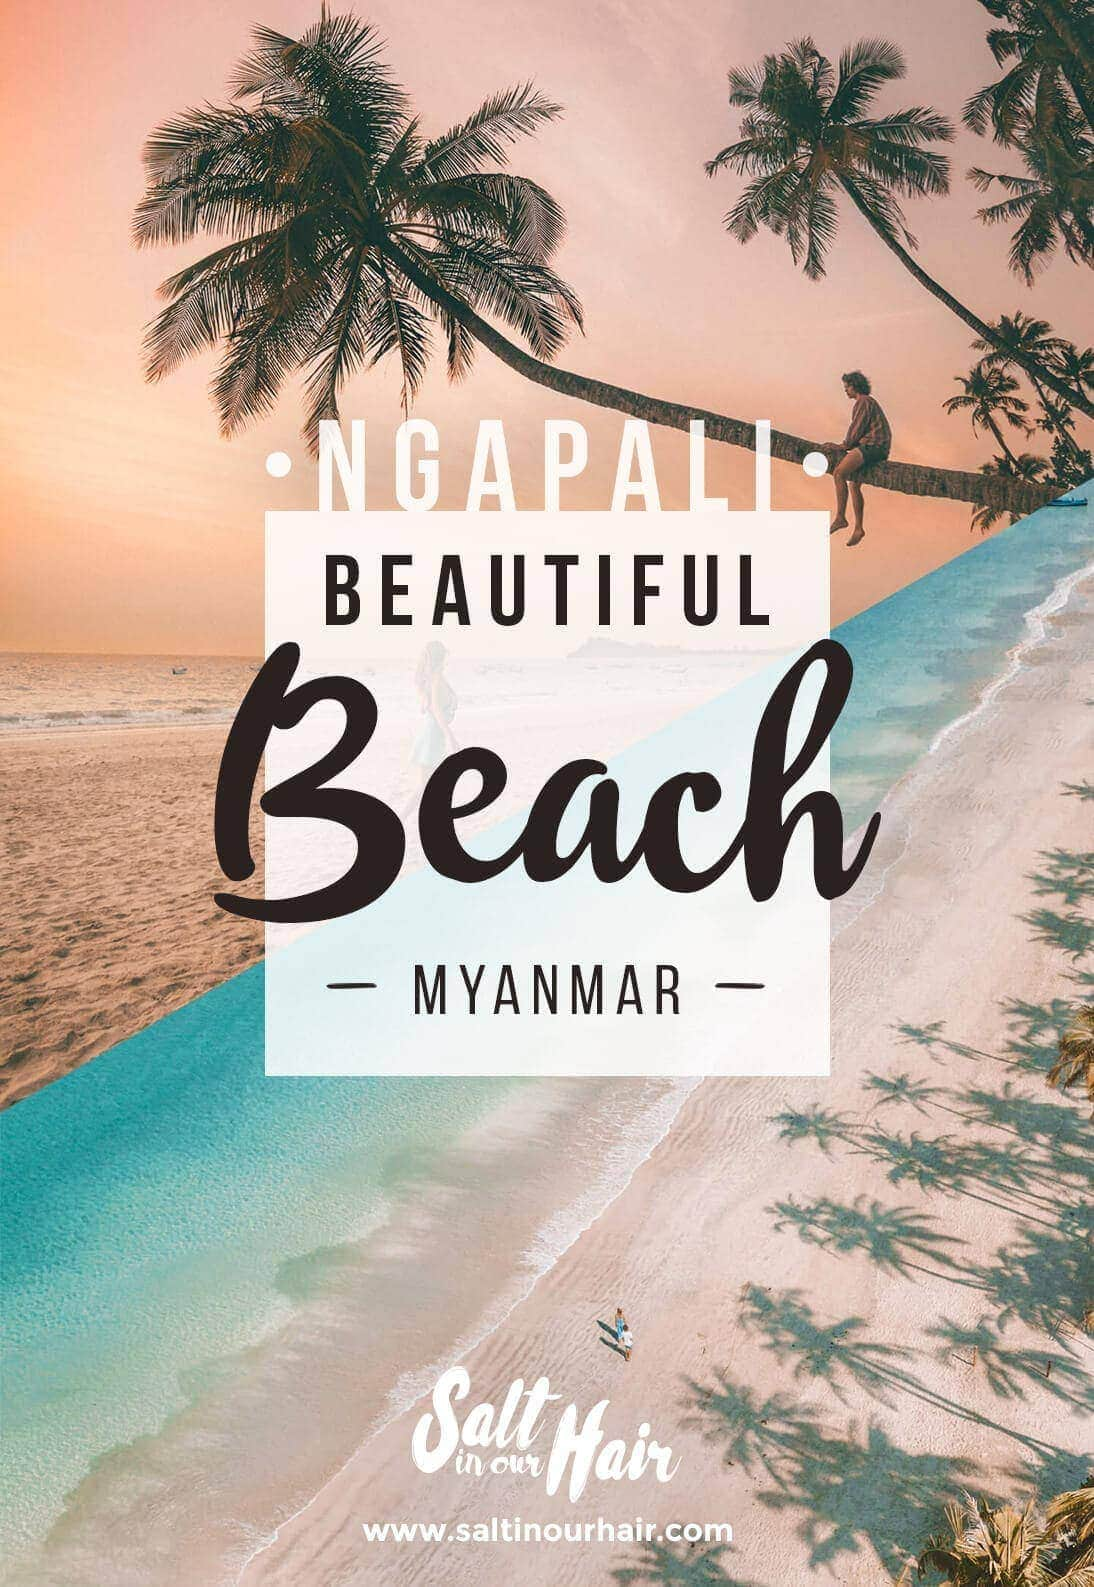 NGAPALI BEACH - One of the most Beautiful Beaches in Asia